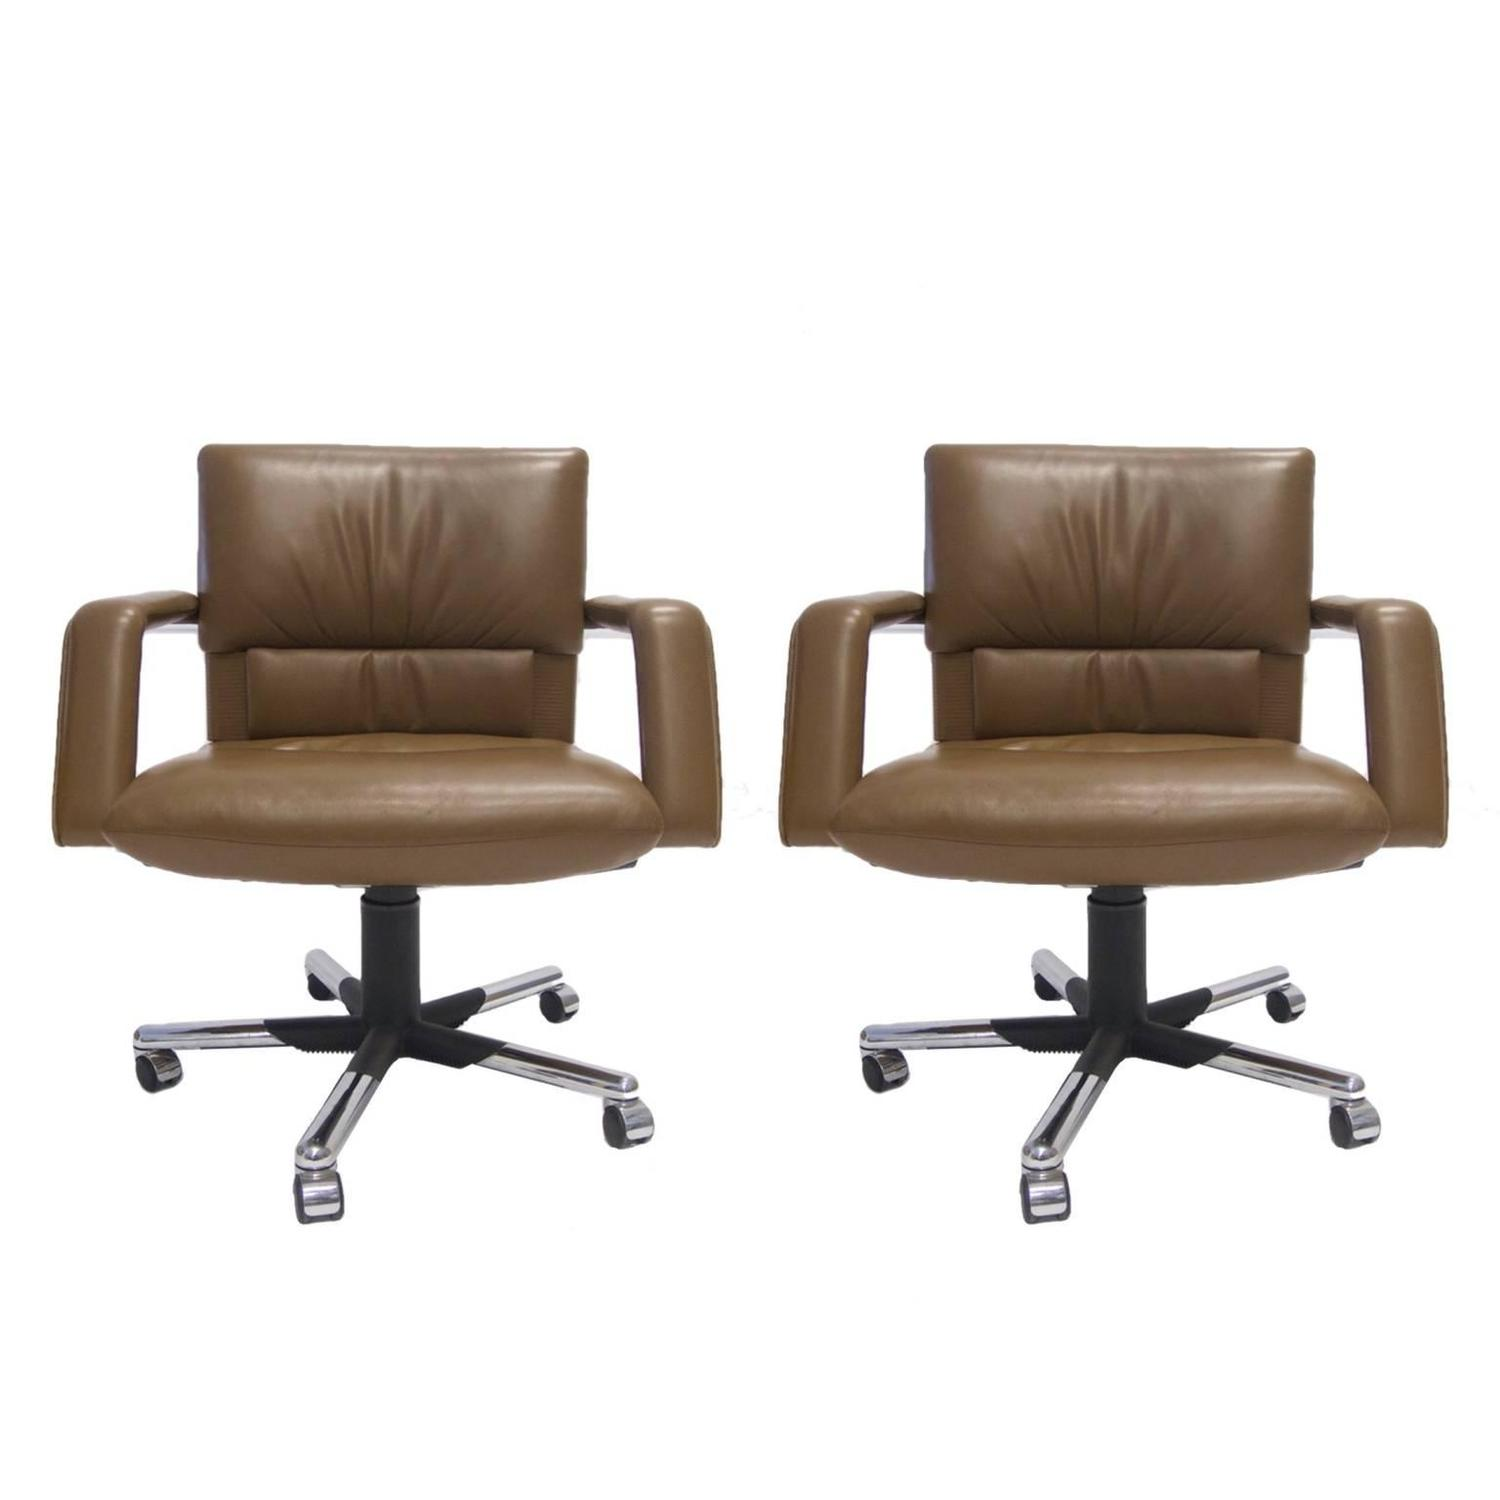 Mario Bellini for Vitra Leather Swivel and Tilt Executive Desk or